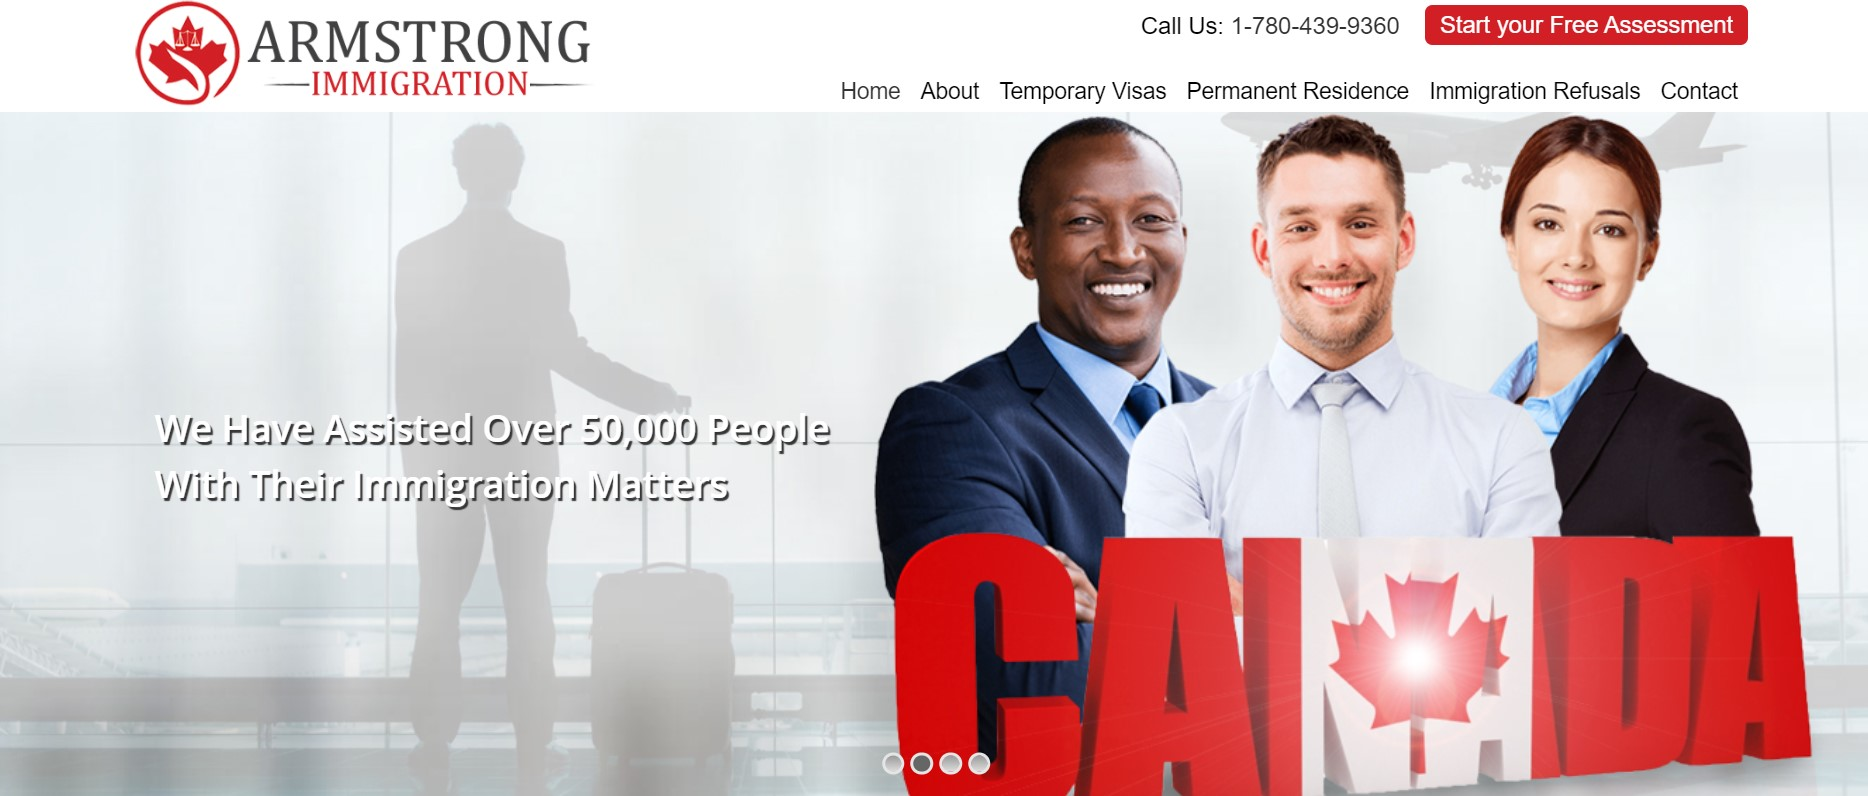 armstrong immigration attorney in edmonton